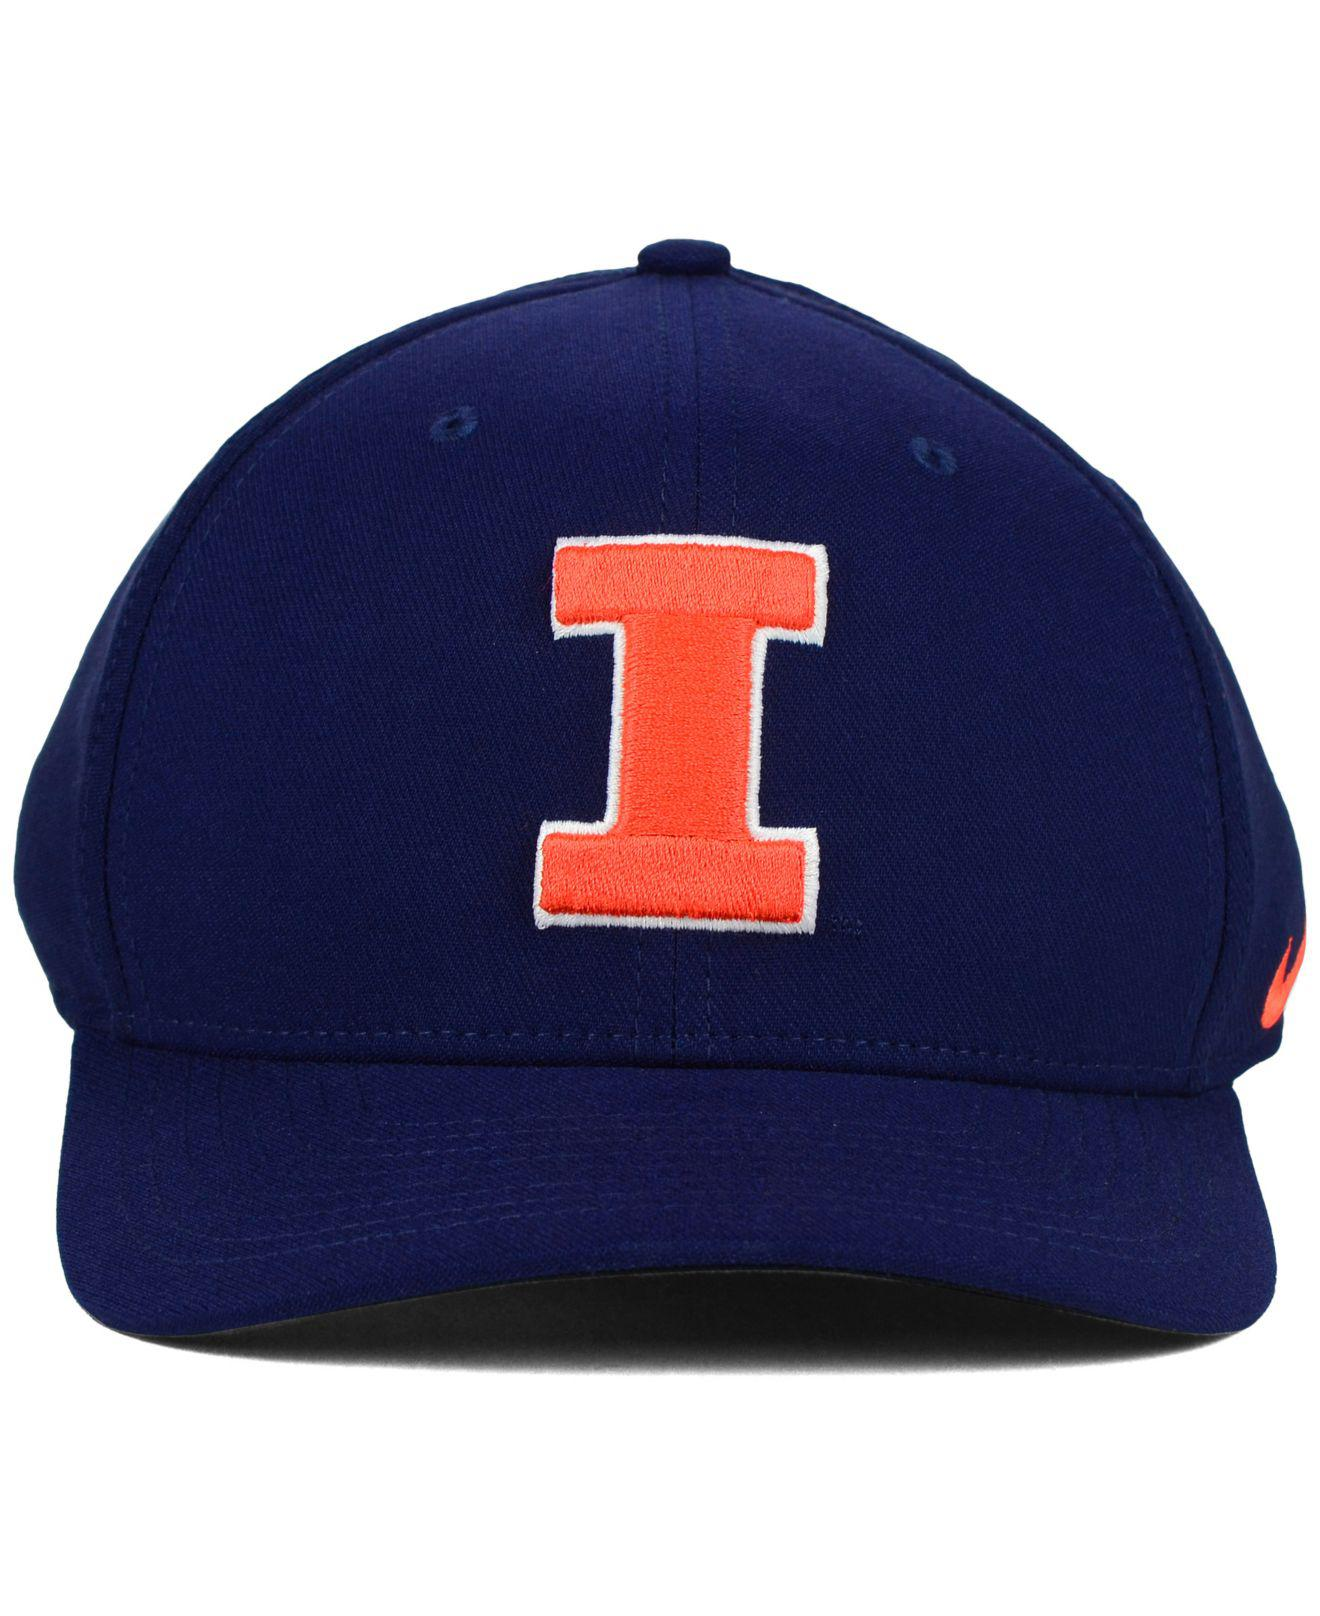 741495d130cc6 ... store lyst nike illinois fighting illini classic swoosh cap in blue for  men 410ab b281b